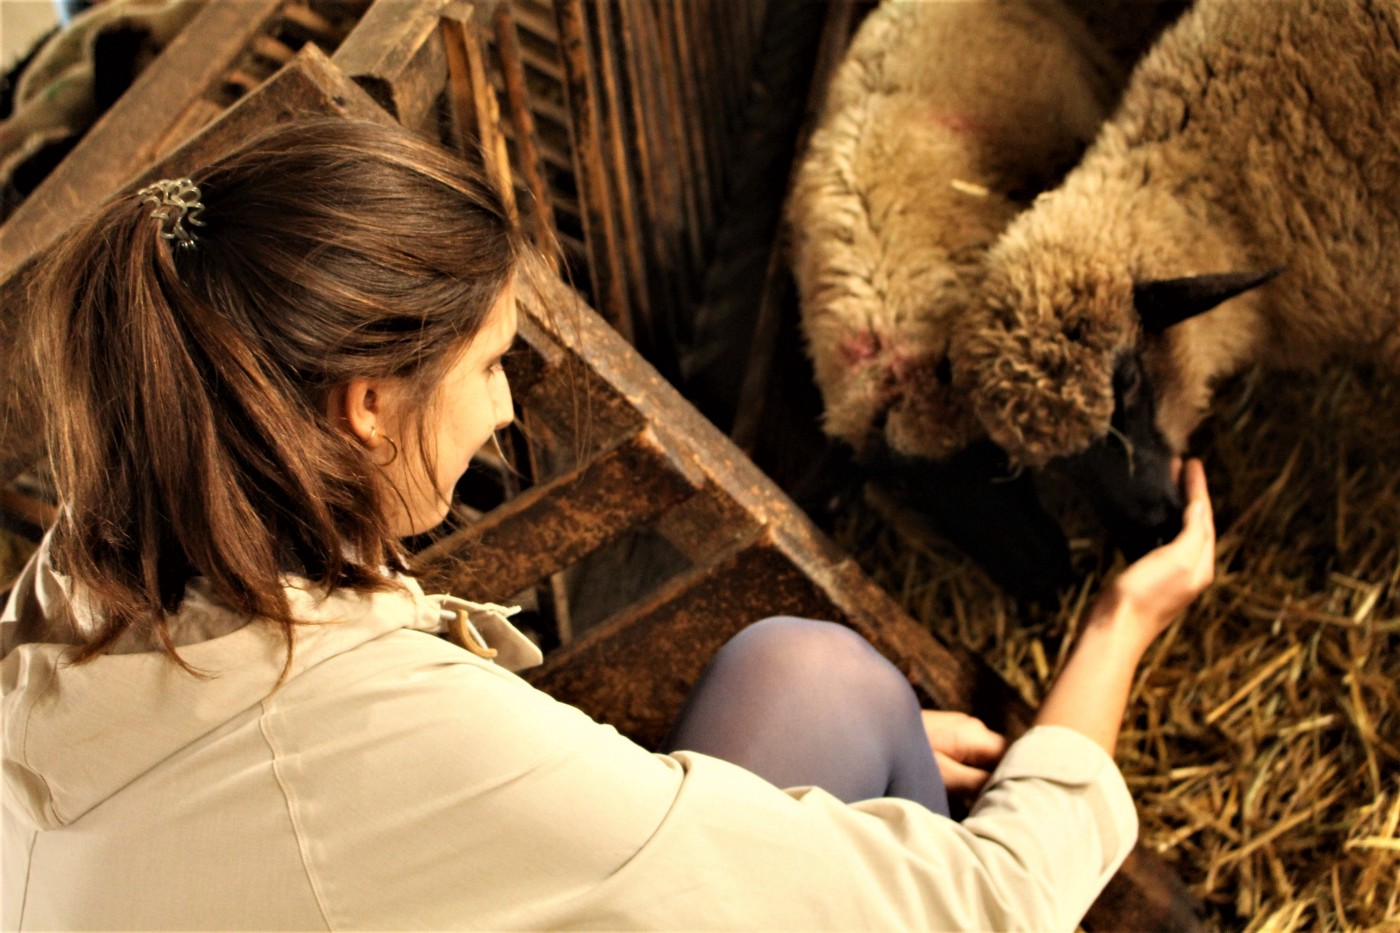 Photo of the author, a woman with brown hair, with an outstretched hand nuzzled by two sheep with black faces